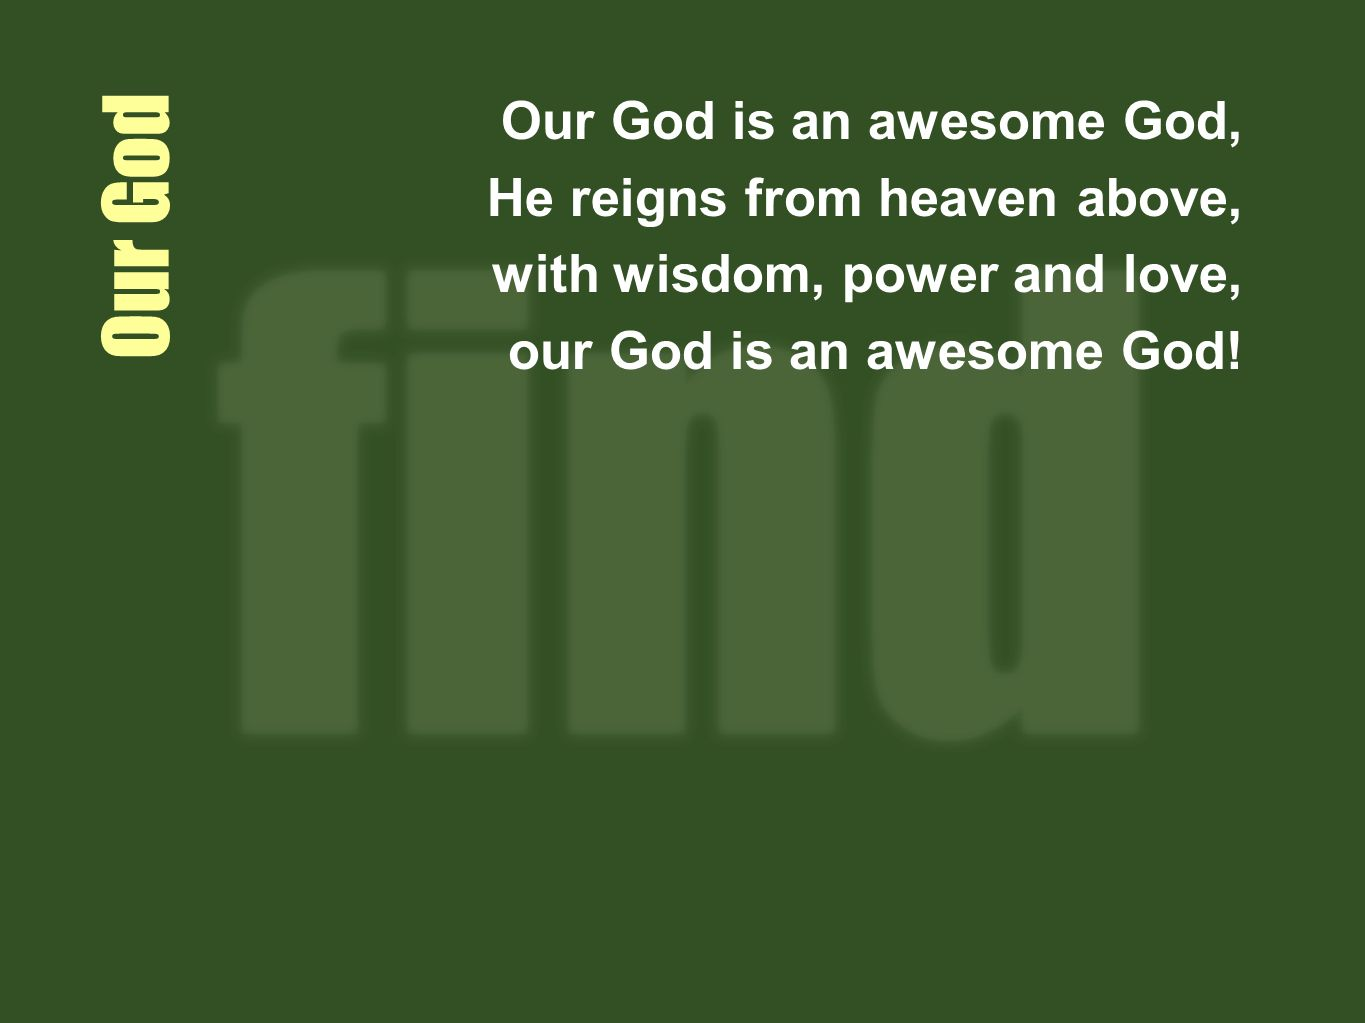 Our God Our God is an awesome God, He reigns from heaven above, with wisdom, power and love, our God is an awesome God!